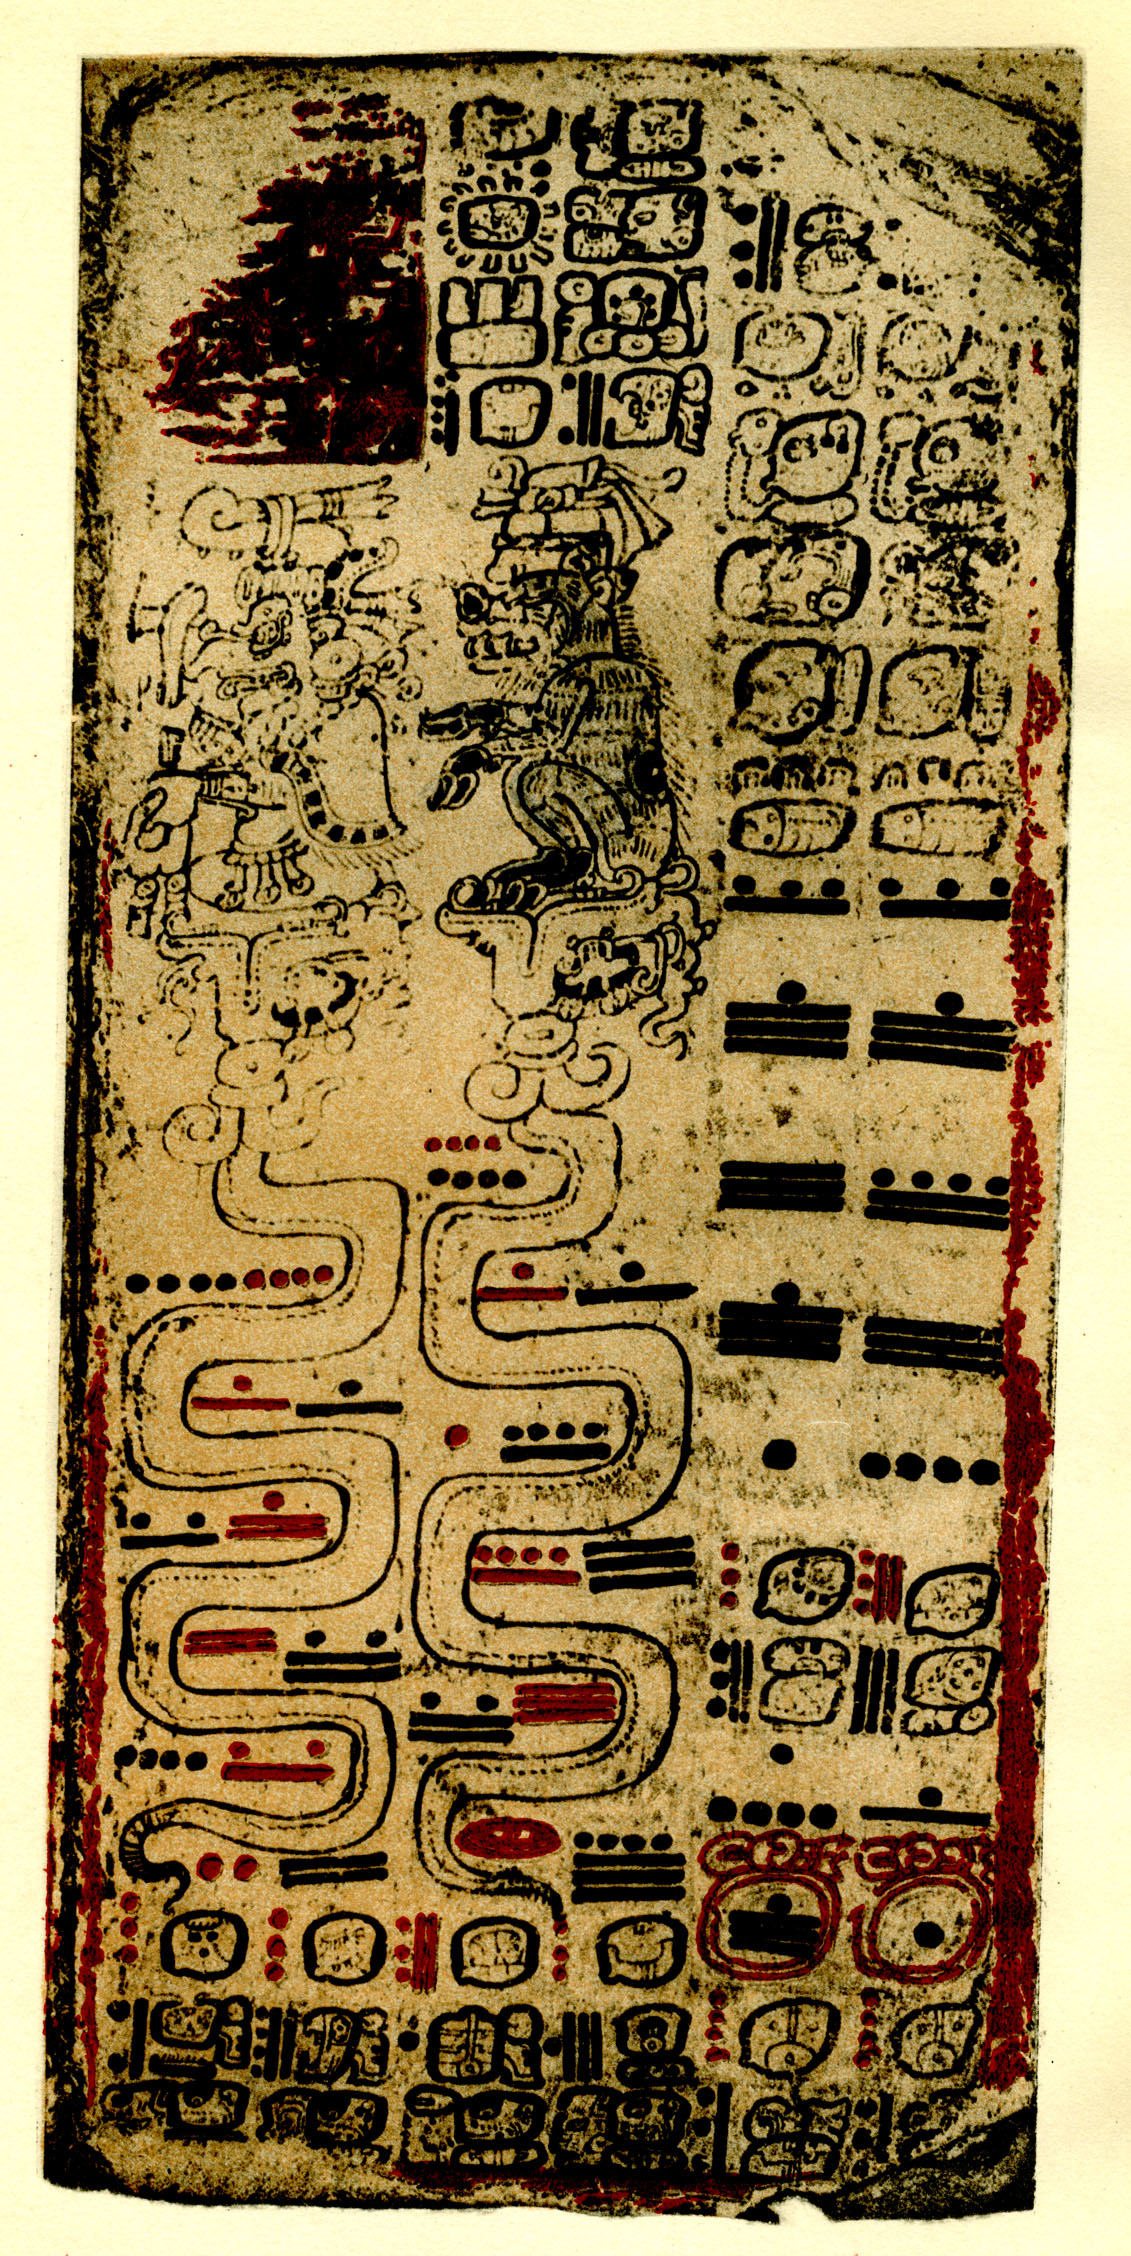 the ancient maya essay The maya of mesoamerica, along with the aztecs of mexico and the incas of peru, made up the high civilizations of the american indians at the time of the.